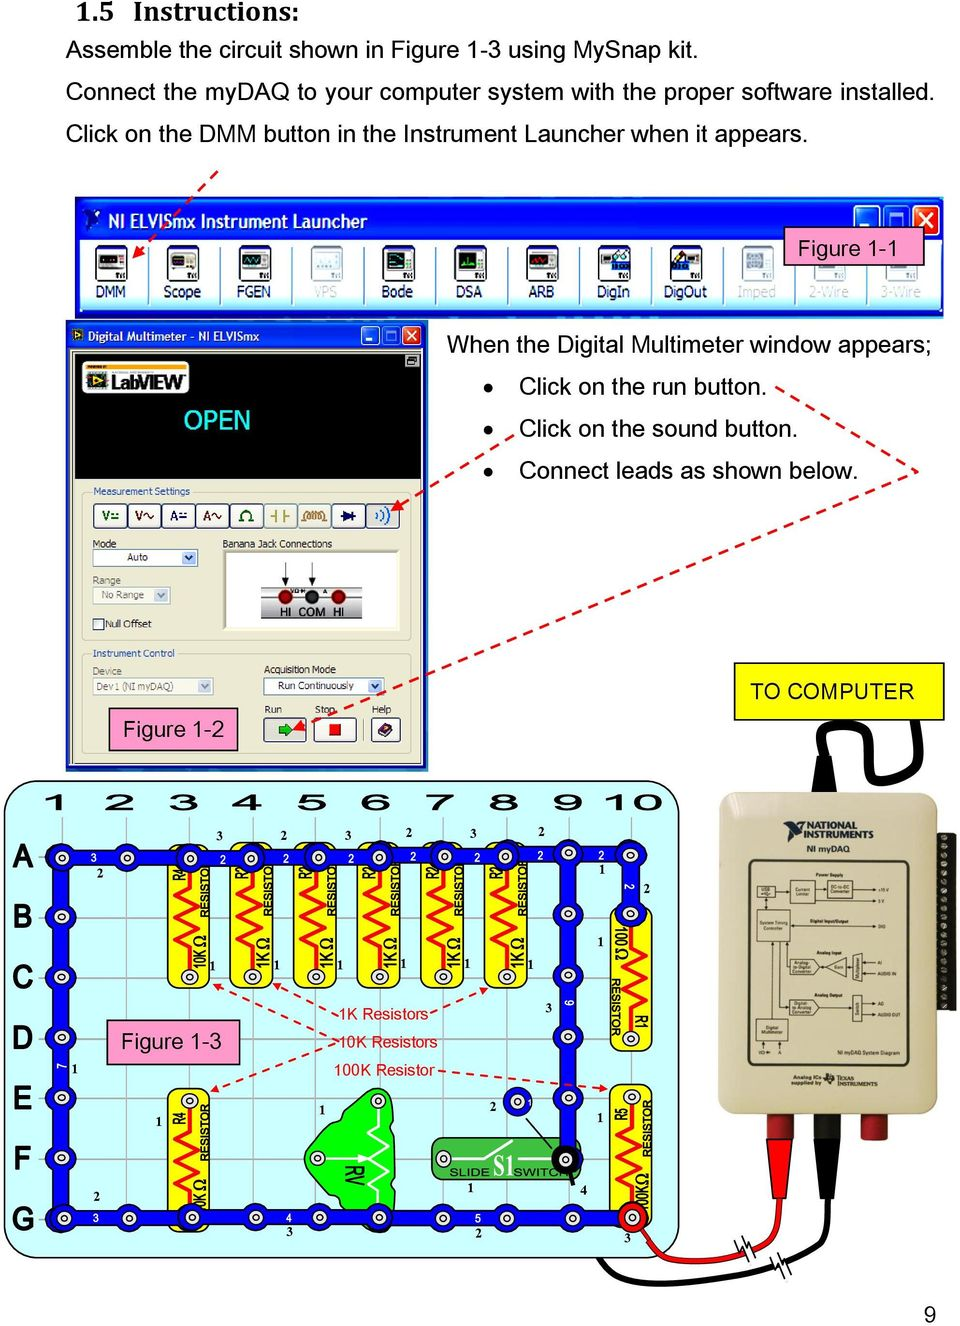 Creative Inquiry Electronics Project Lab Manual Ni Mydaq Pdf Snap Circuits Click On The Dmm Button In Instrument Launcher When It Appears